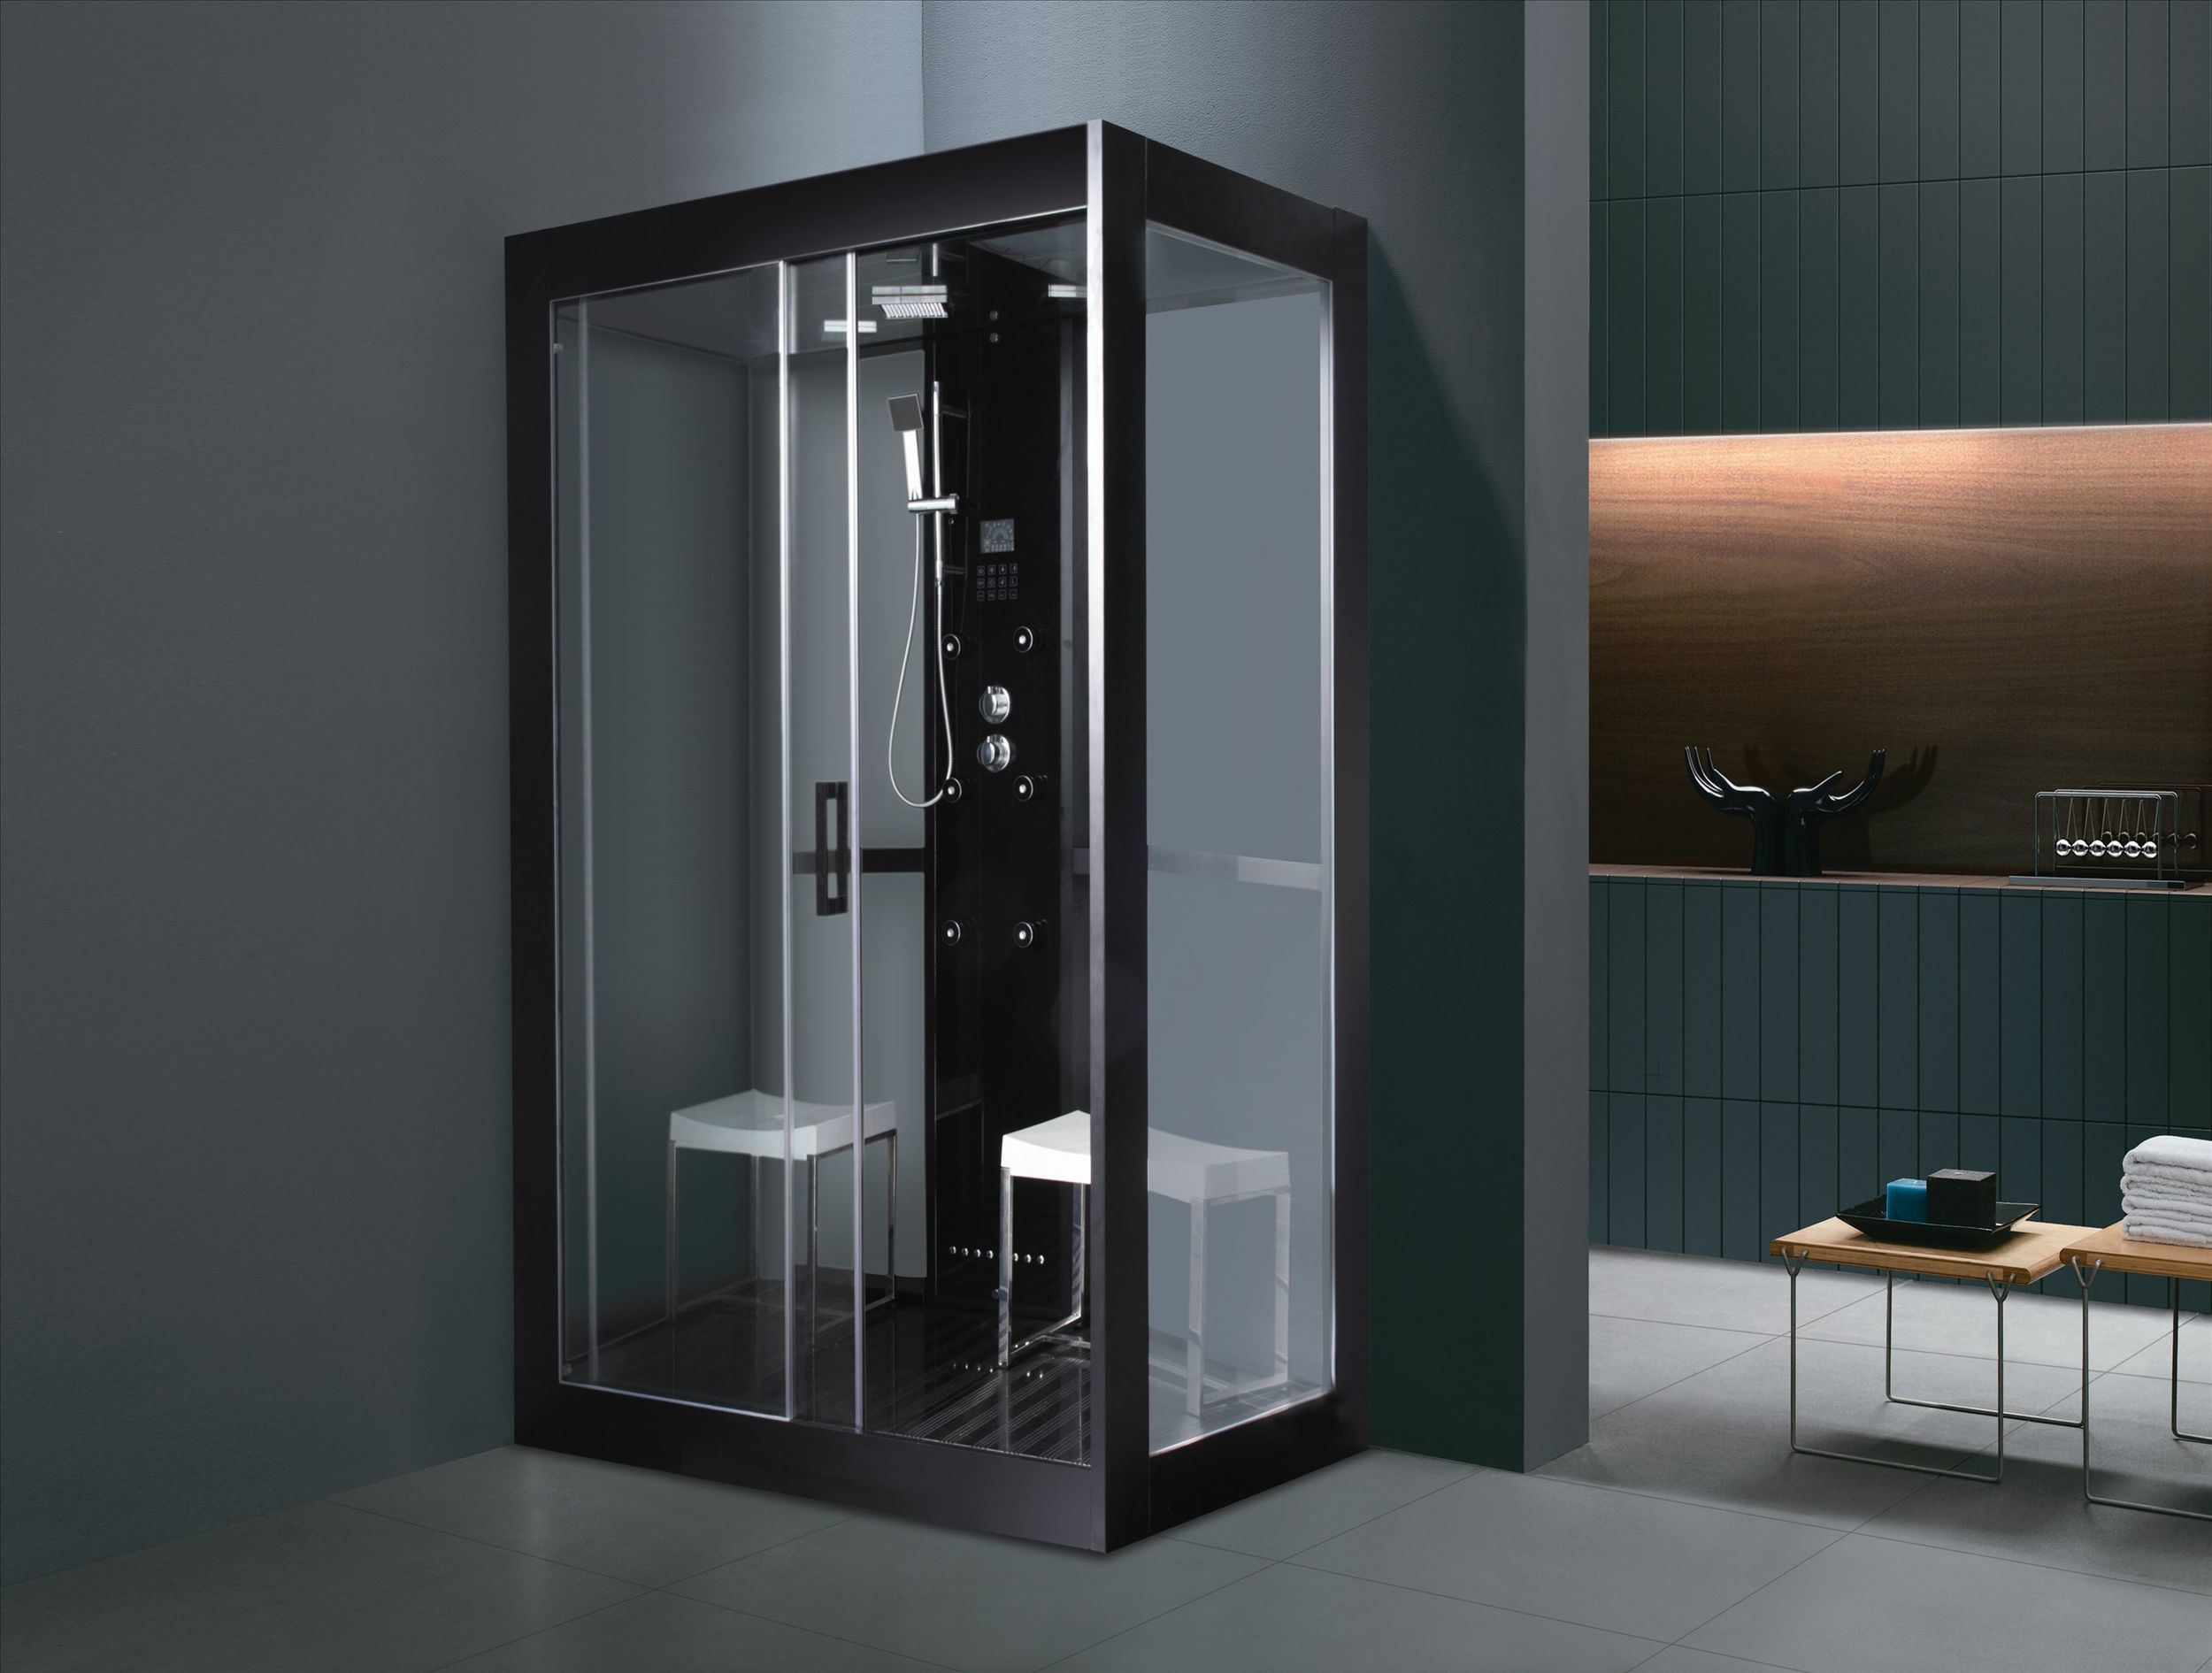 China Luxury High Quality Computer Controlled Steam Sauna Shower ...